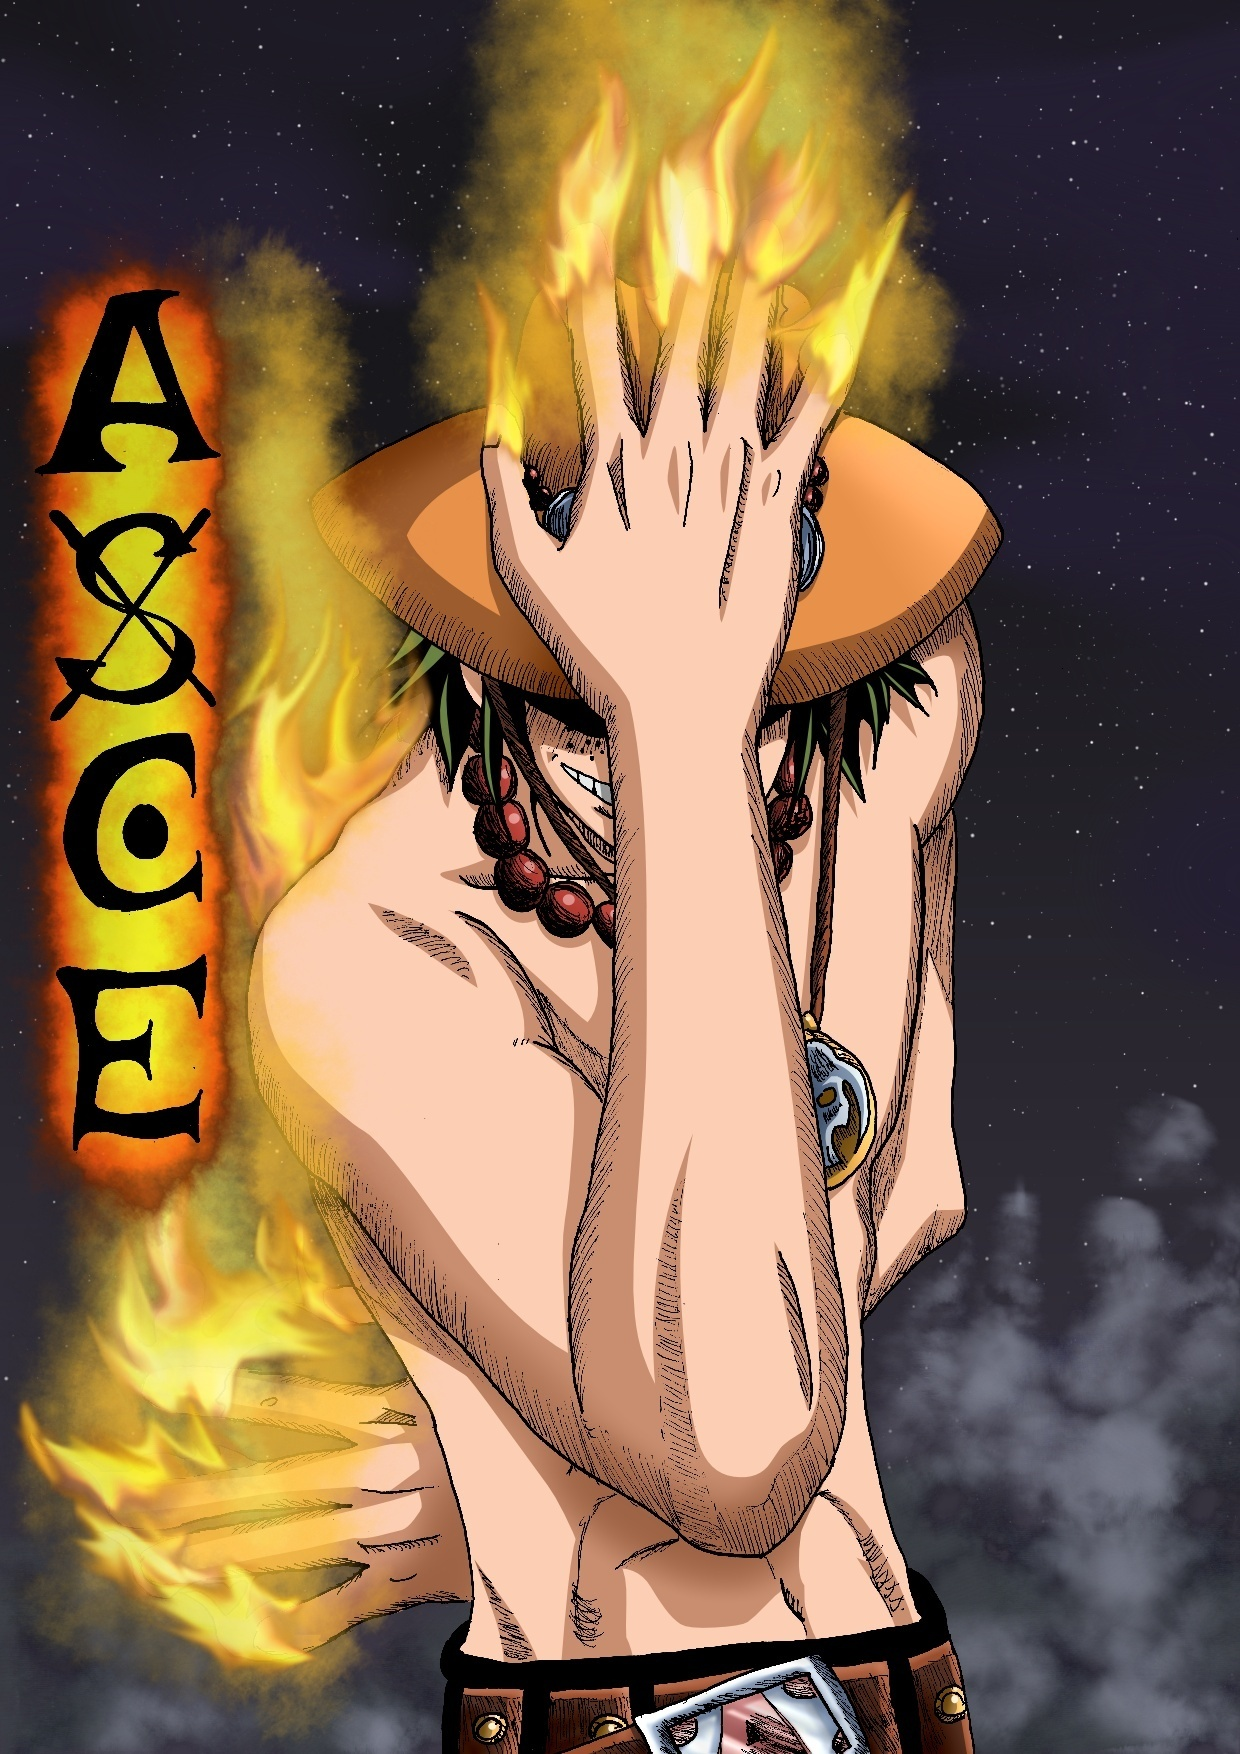 One Piece Ace Ace - One Piece Photo ...